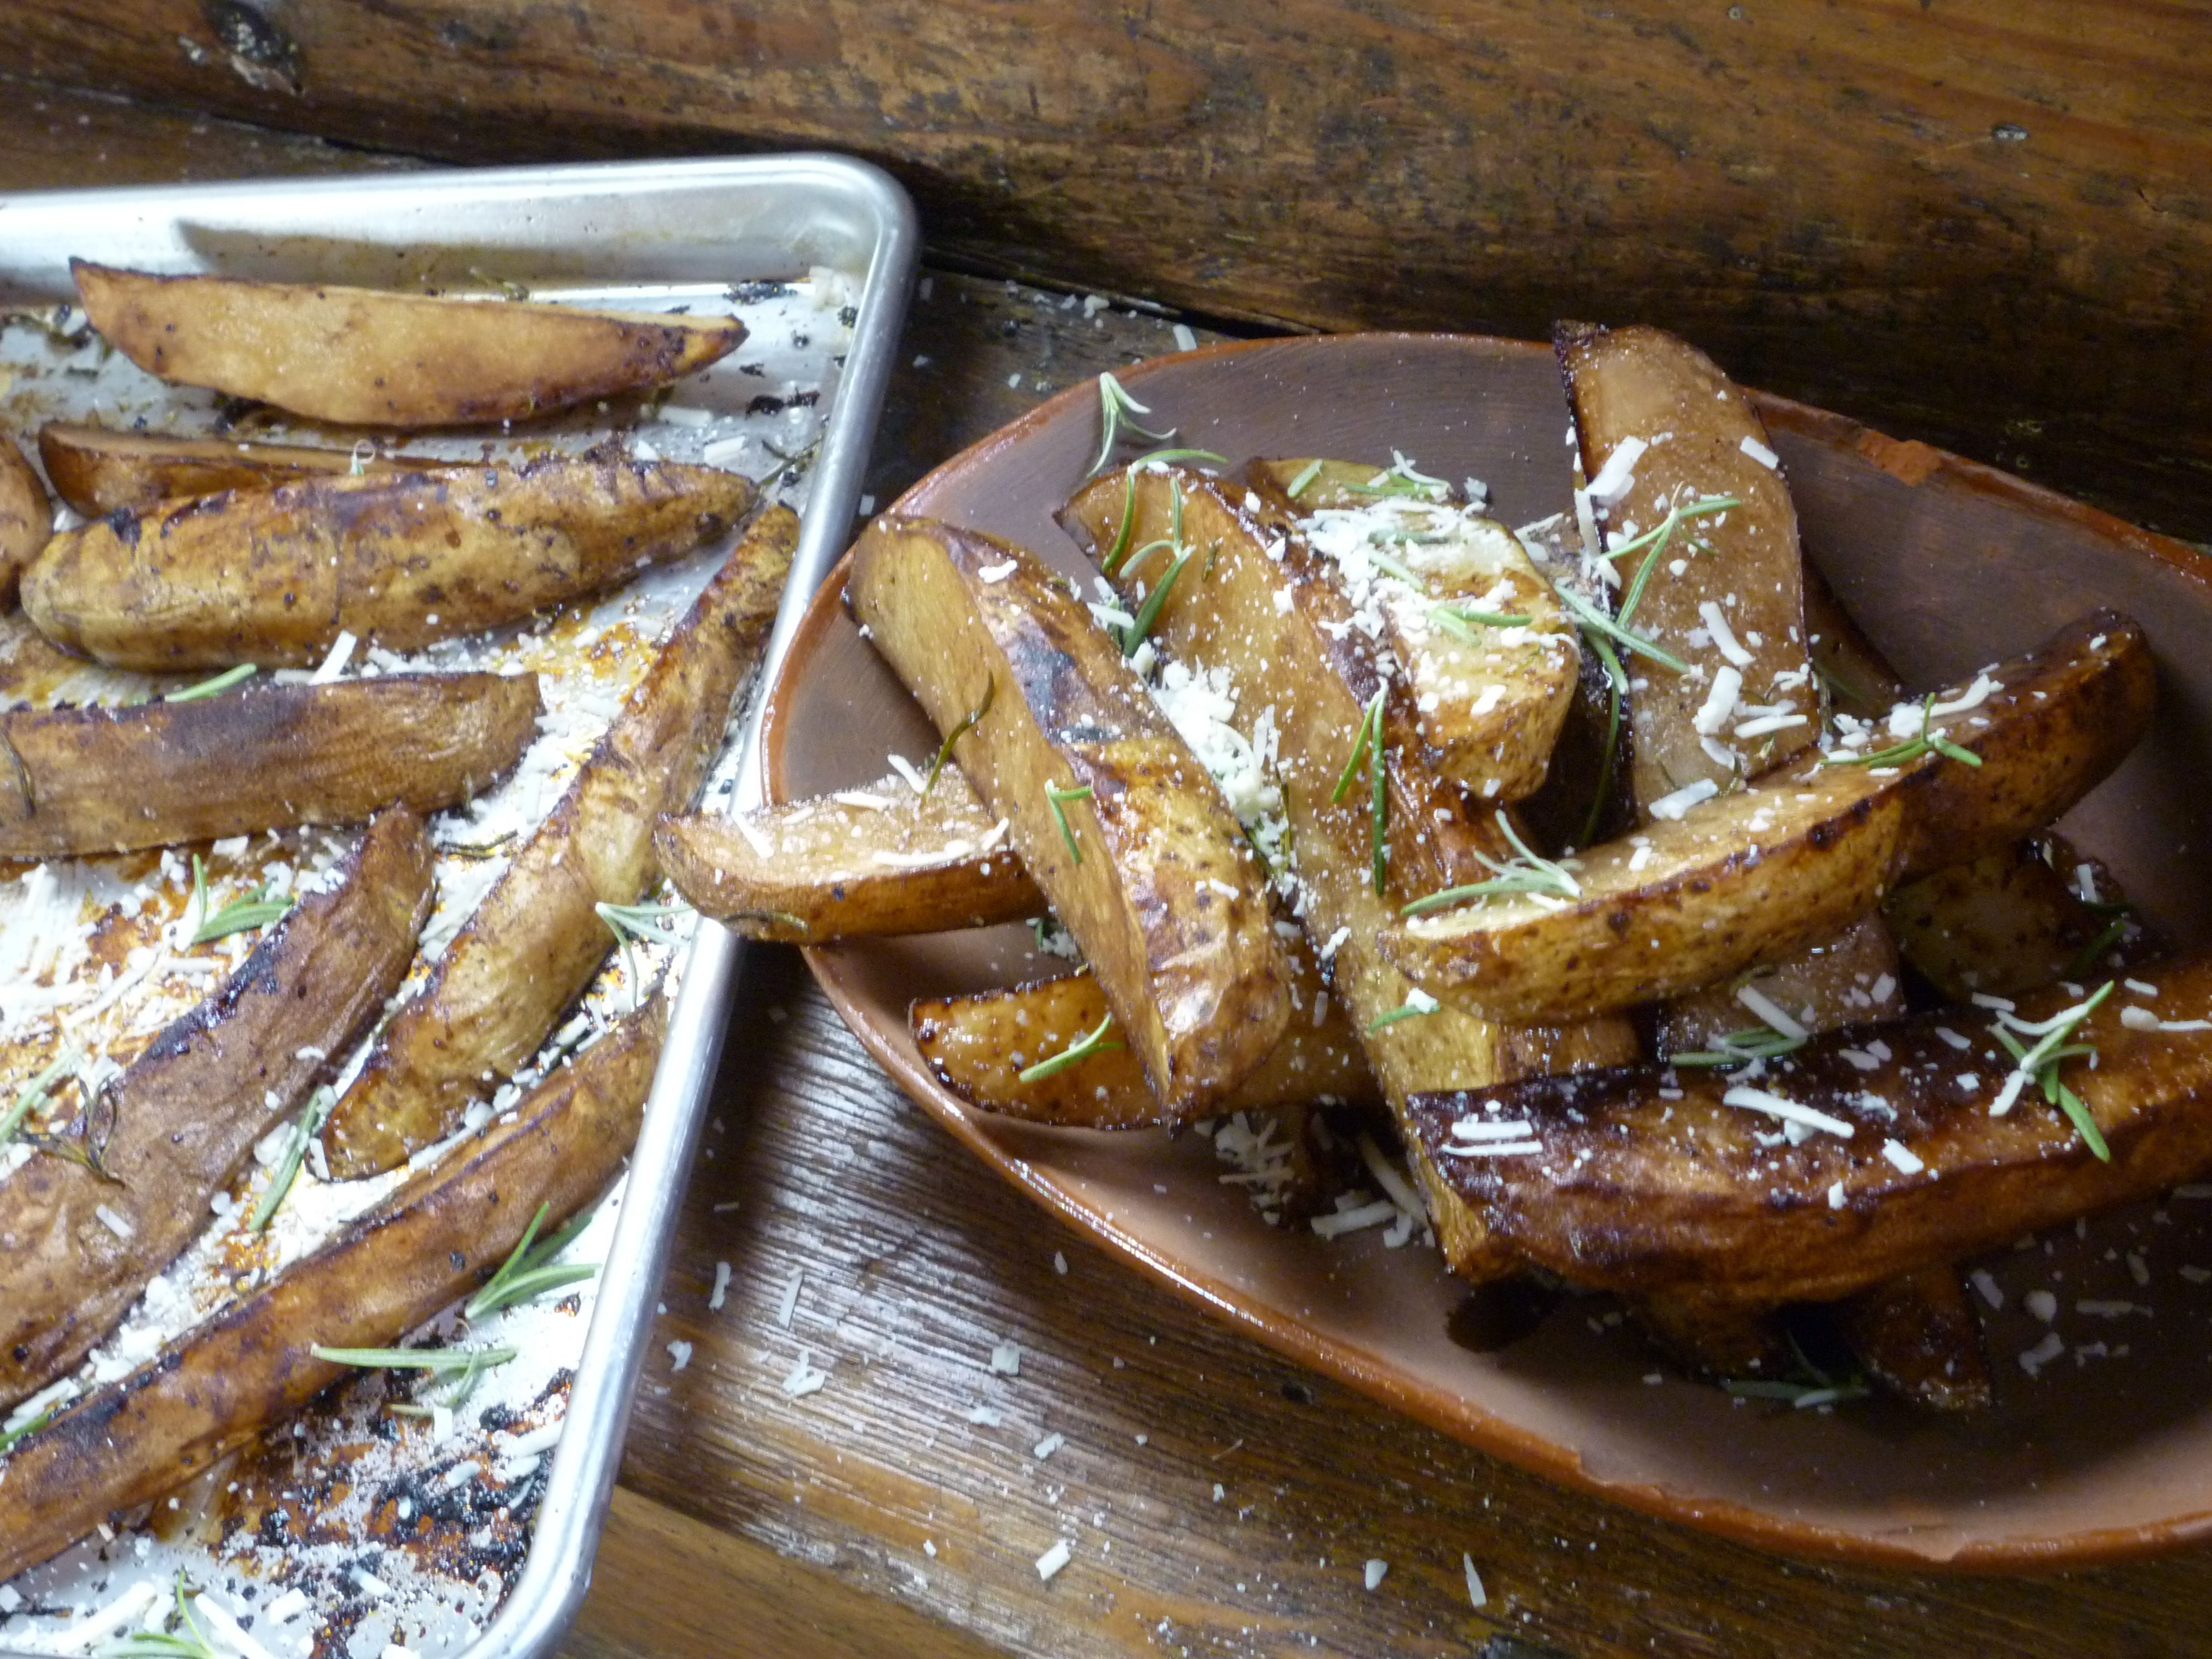 Farmhouse Rules Beer Braised Brisket Roasted Russet Wedges With Balsamic Vinegar And Rosemary